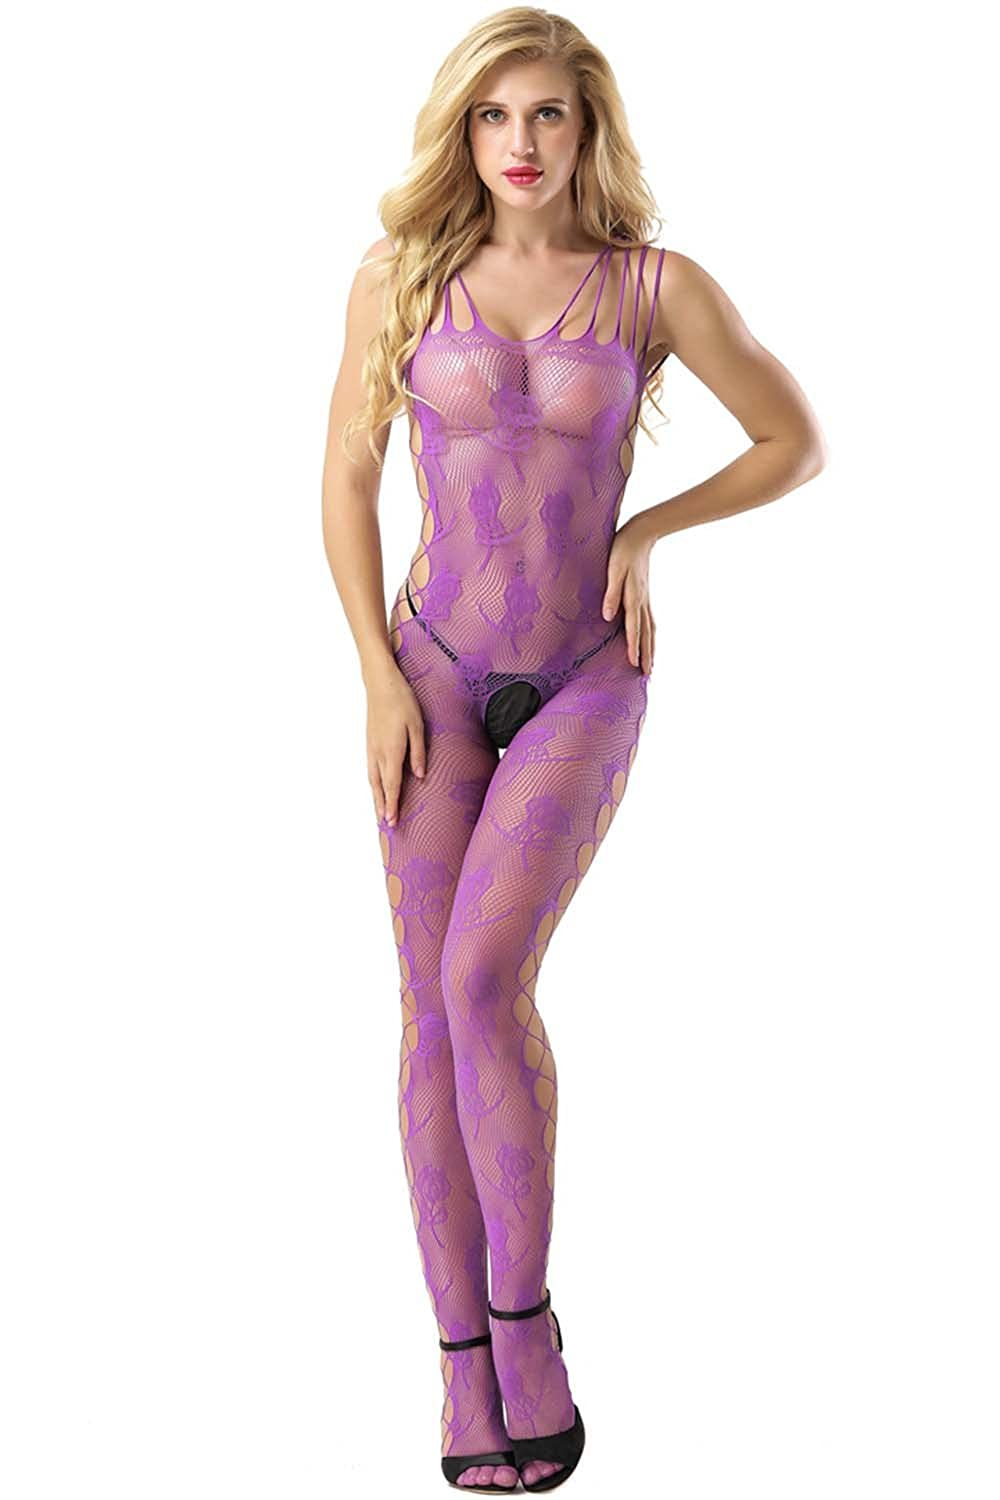 f85455b63d8 Amazon.com  evershare Women Sexy Lingerie Bodystocking Fishnet Floral  Crotchless Bodysuit For Sex Black  Clothing